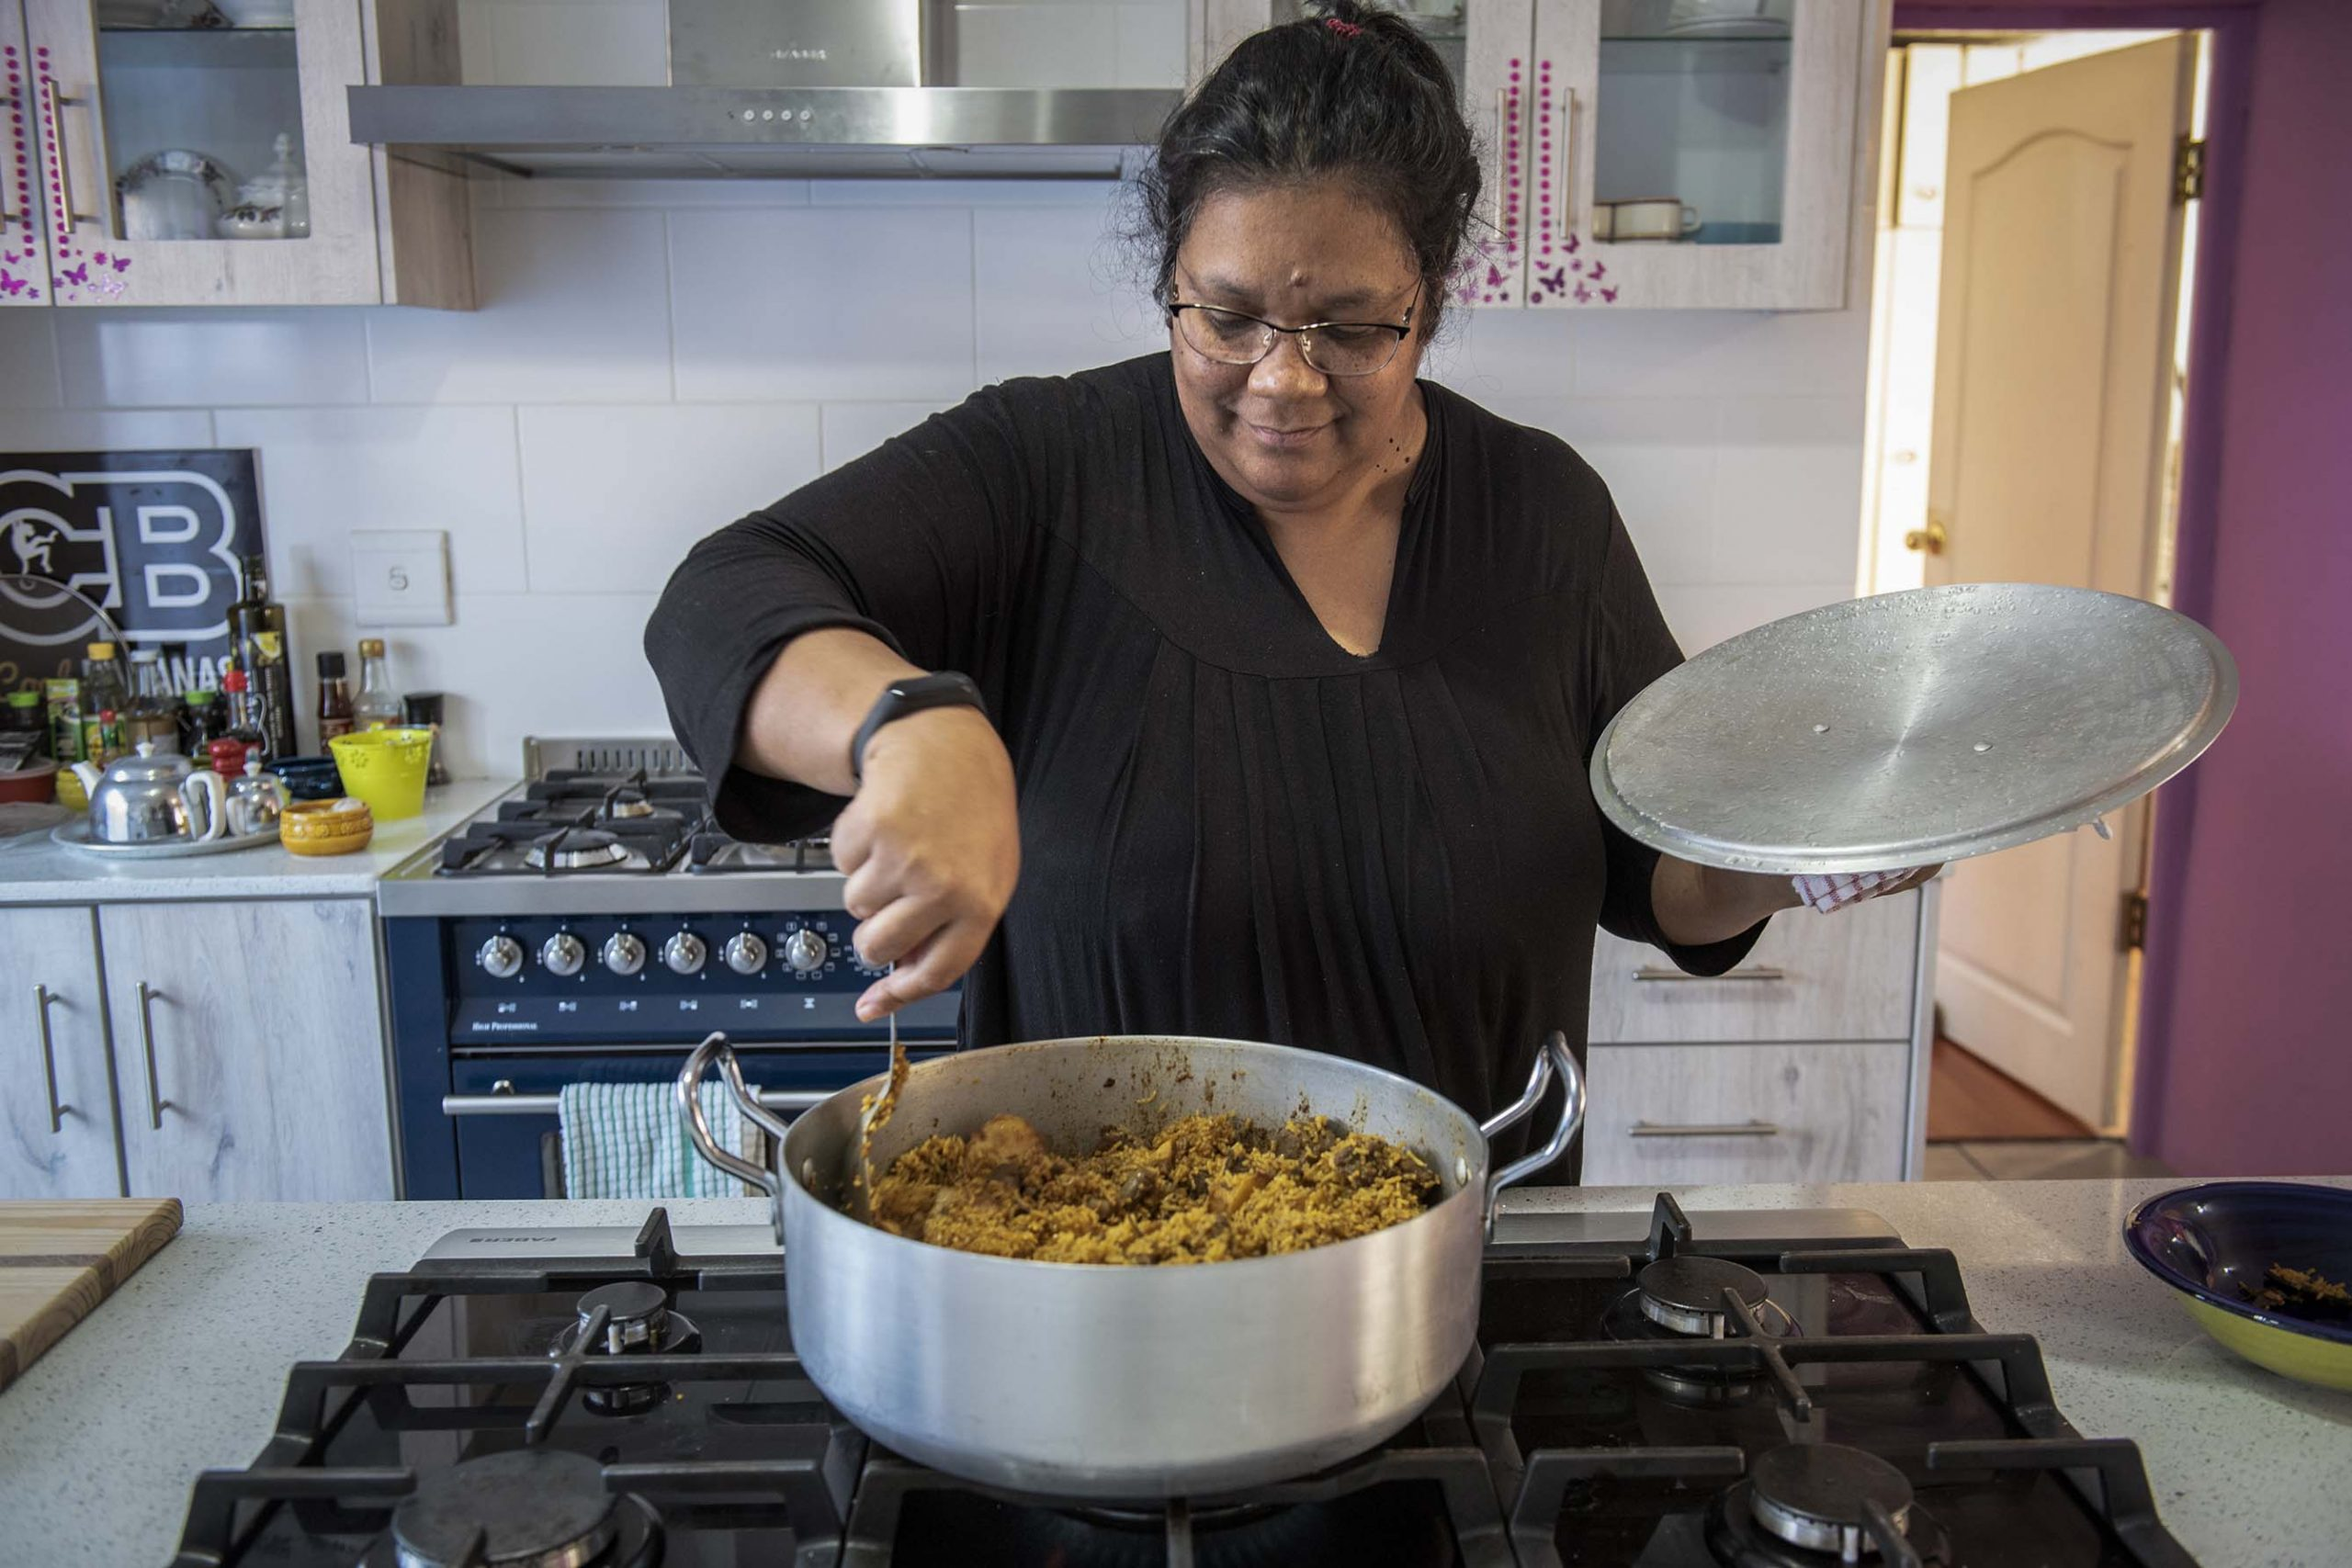 7 September 2019: Fatima Sydow presents her popular cookery show, Kaap, Kerrie en Koe'sisters, with her twin sister Gadija Noordien from her home kitchen in Lansdowne, Cape Town. (Photograph by Ishay Govender)